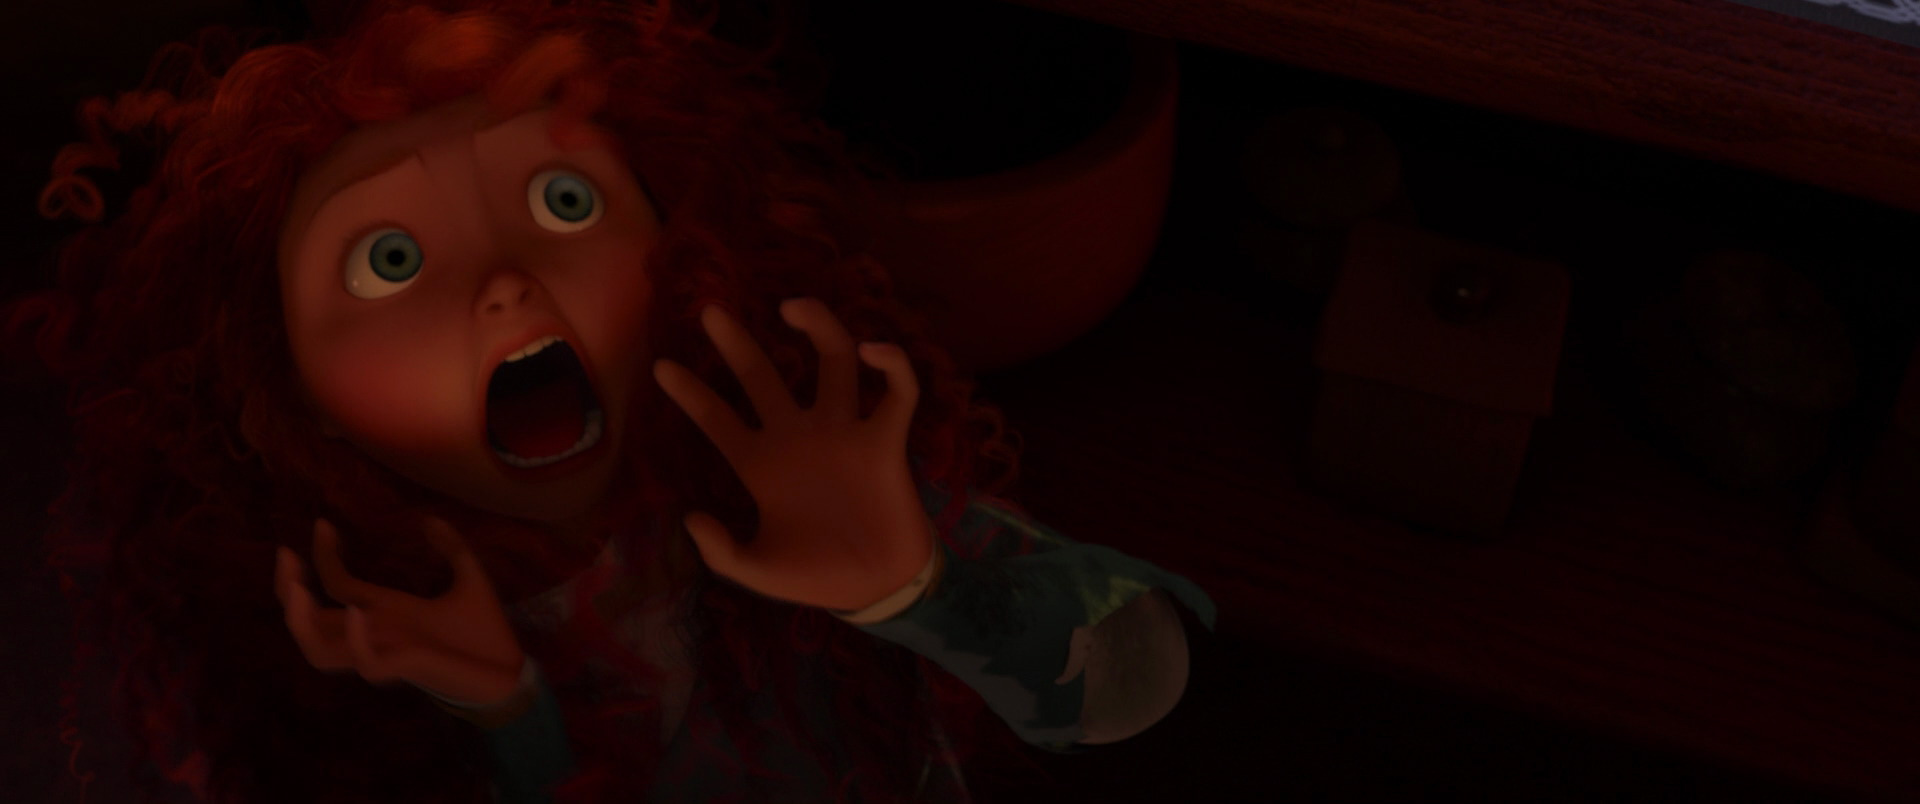 Merida Images A Spell To Change My Mom HD Wallpaper And Background Photos